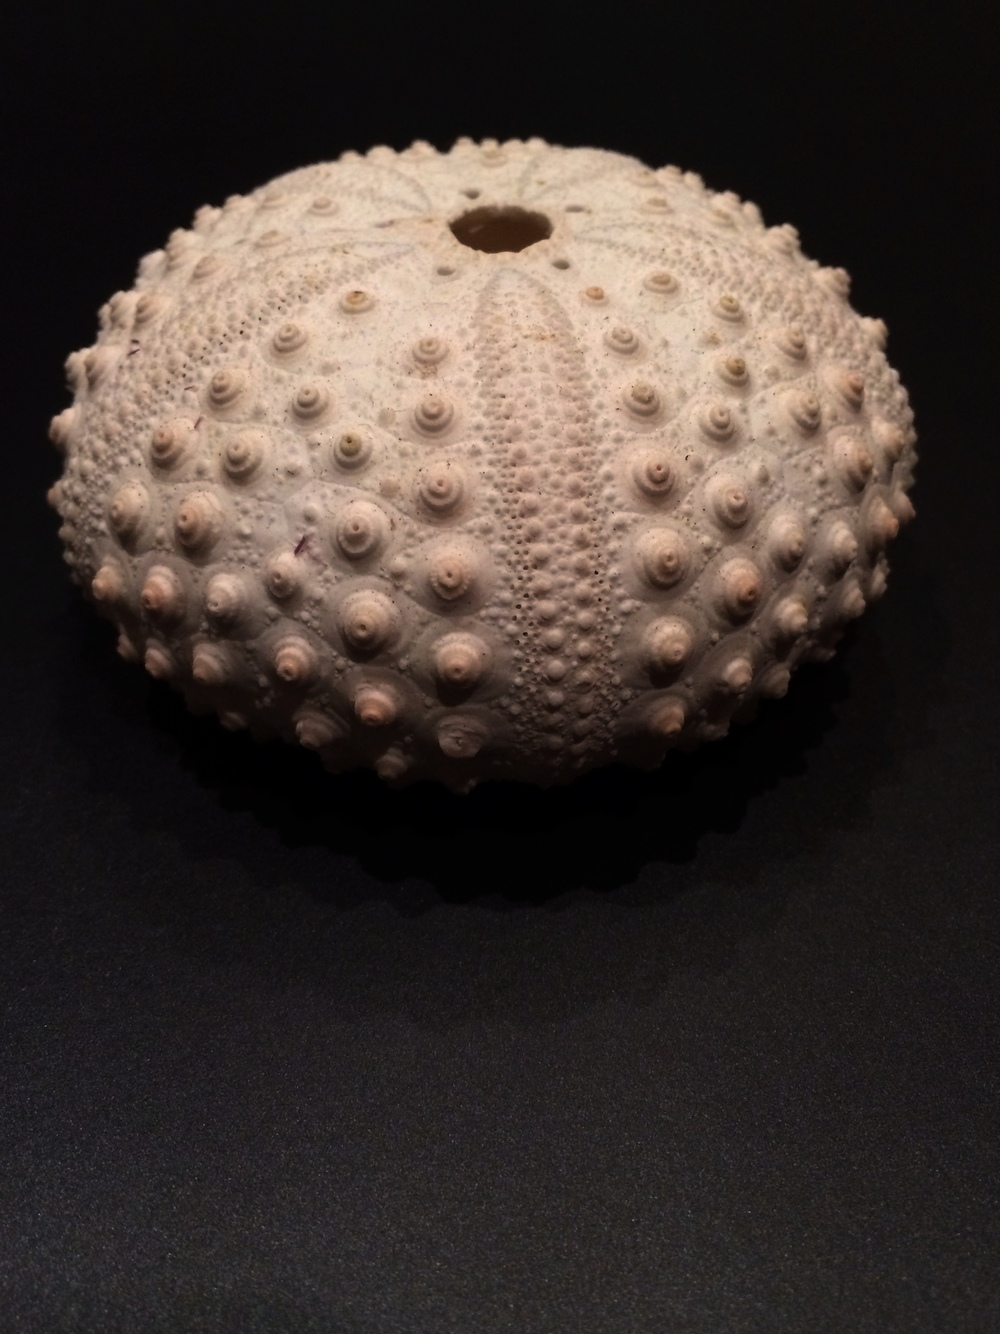 Skeleton of a sea urchin.